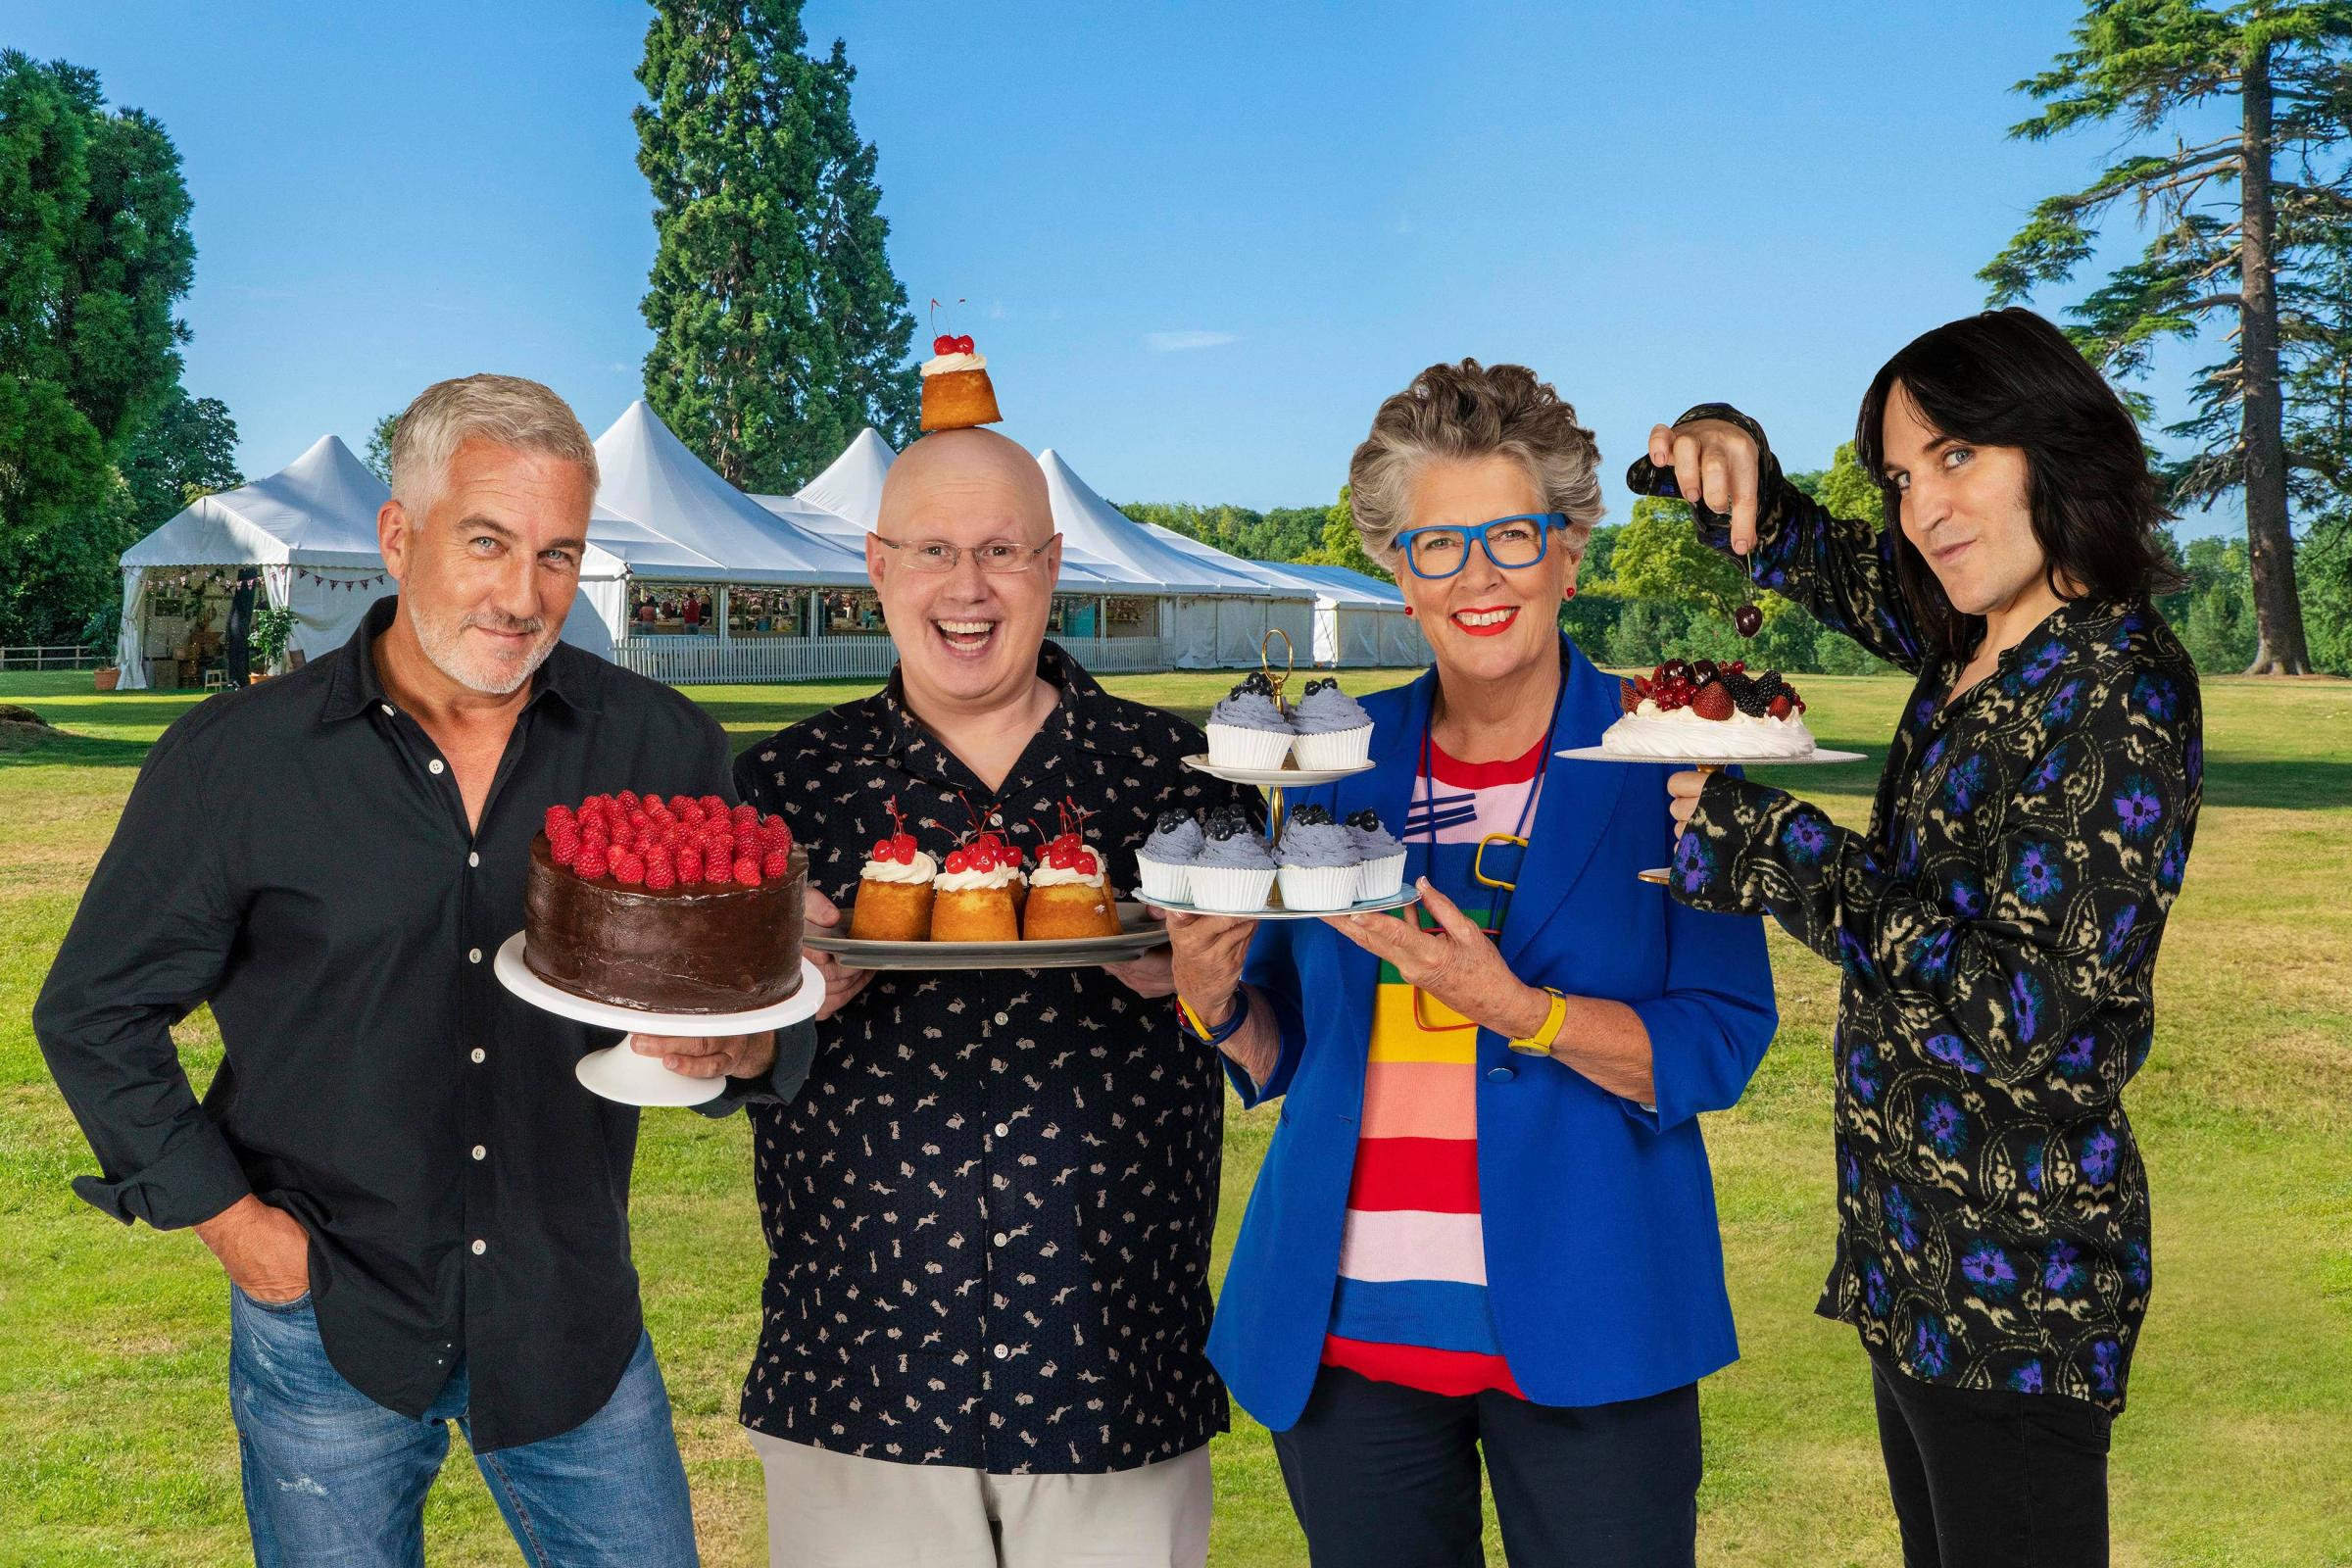 Bake Off Week 7 theme revealed!